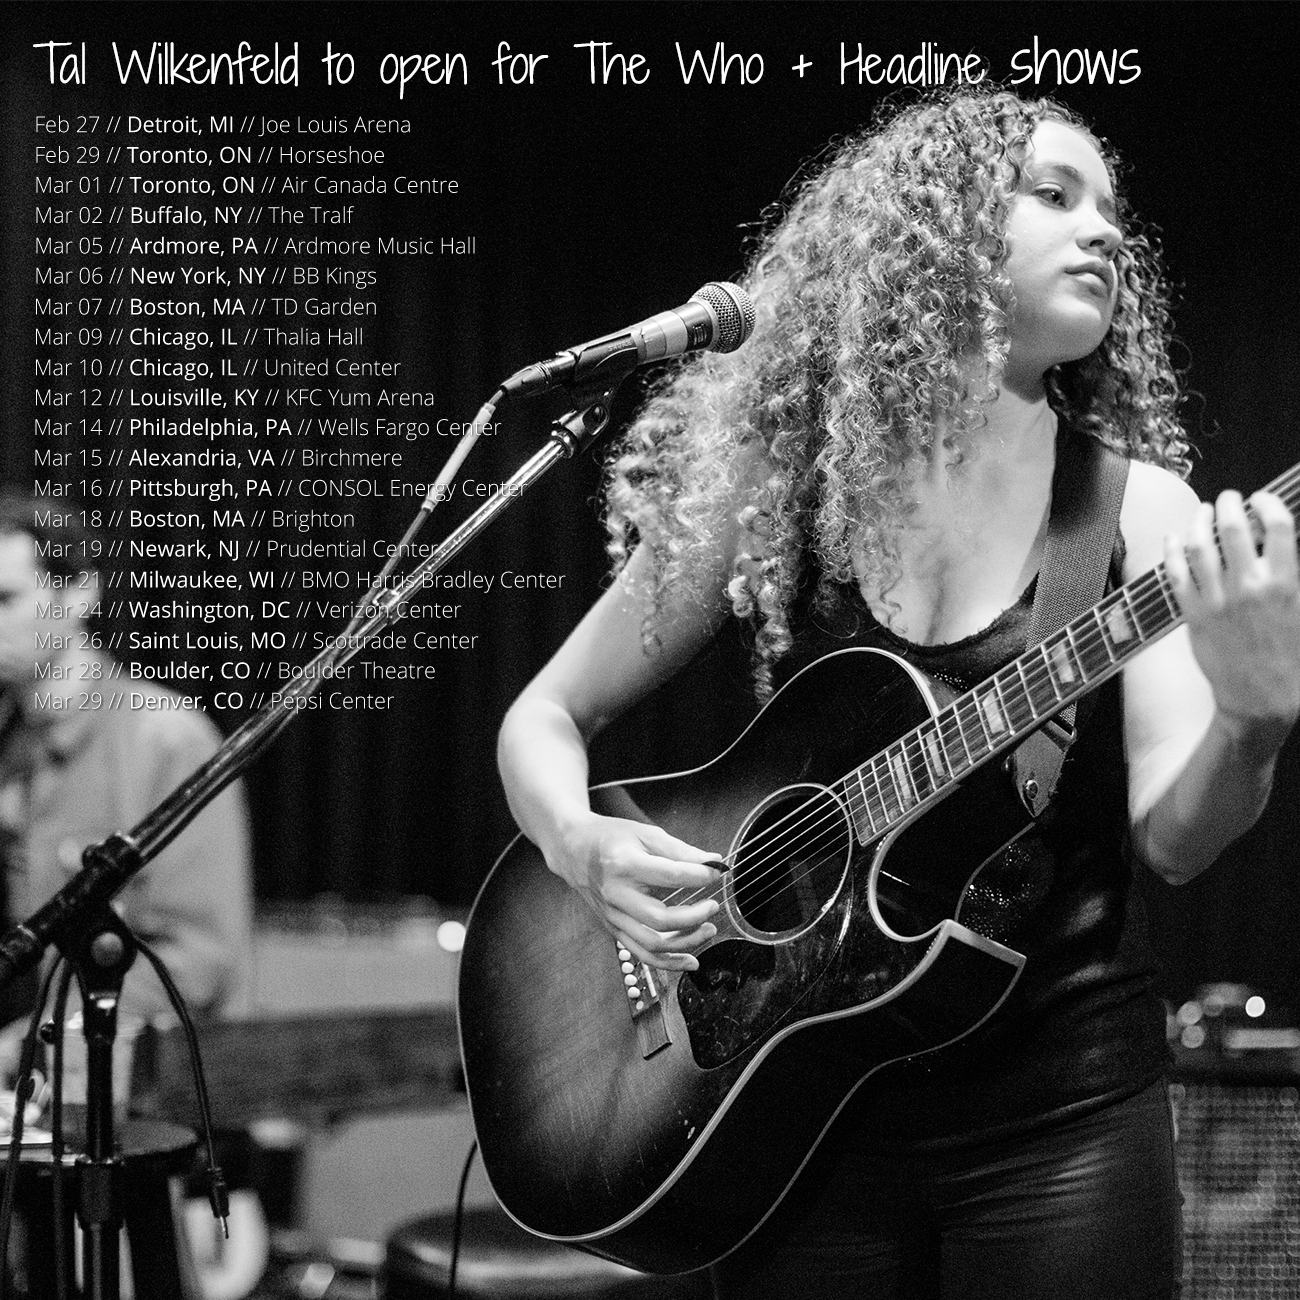 image Tal Wilkenfeld on tour with The Who